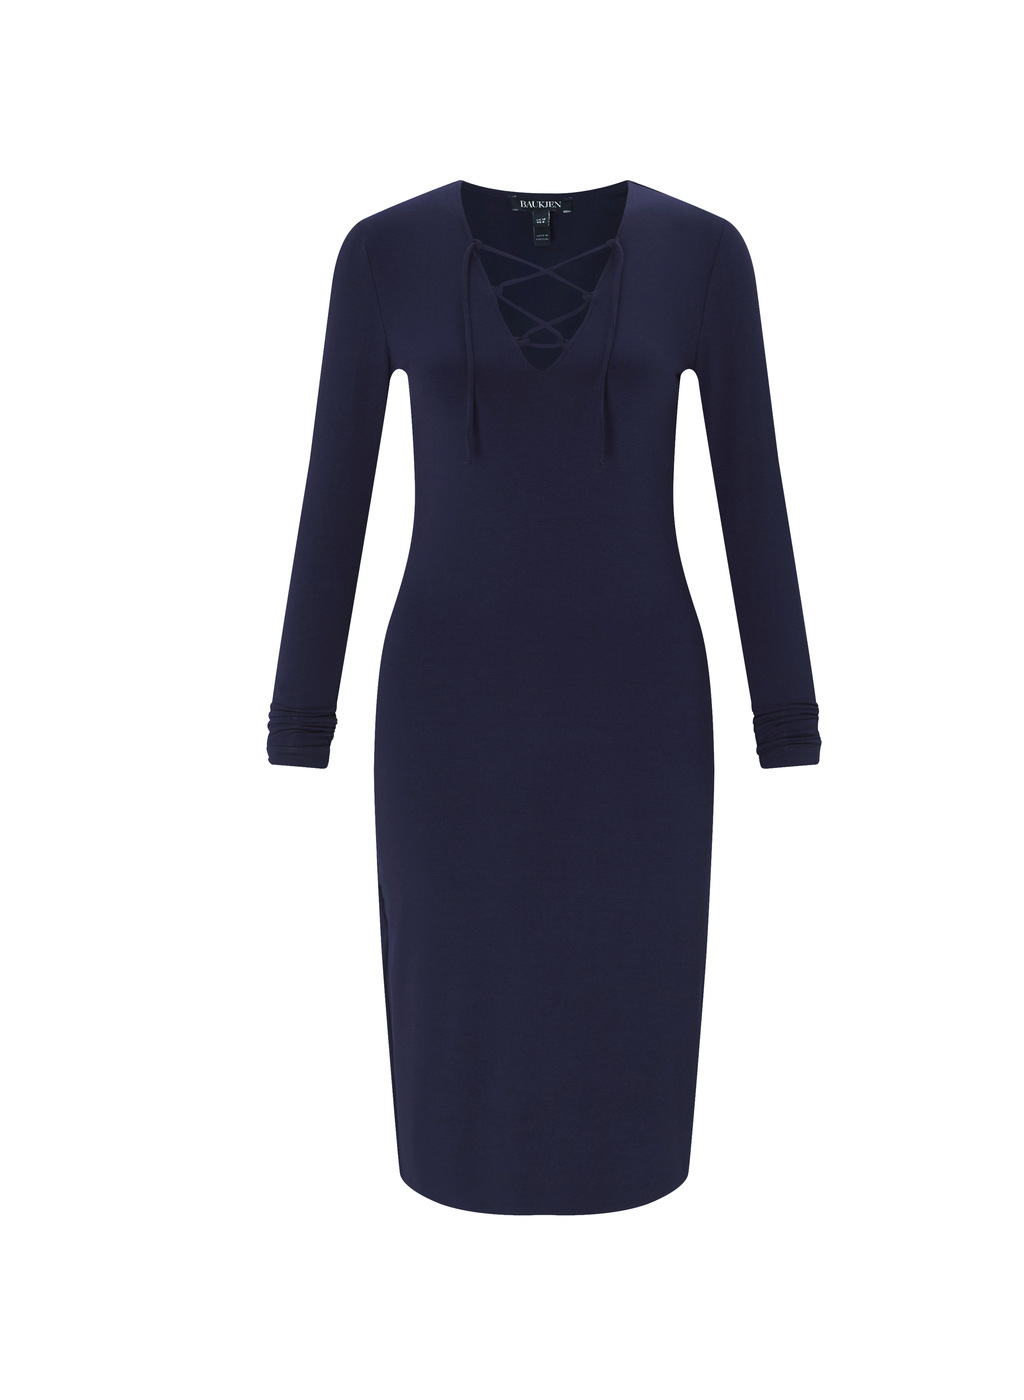 Womenswear Hinton Dress - neckline: v-neck; fit: tight; pattern: plain; style: bodycon; predominant colour: navy; occasions: evening; length: on the knee; fibres: viscose/rayon - stretch; sleeve length: long sleeve; sleeve style: standard; texture group: jersey - clingy; pattern type: fabric; season: a/w 2016; wardrobe: event